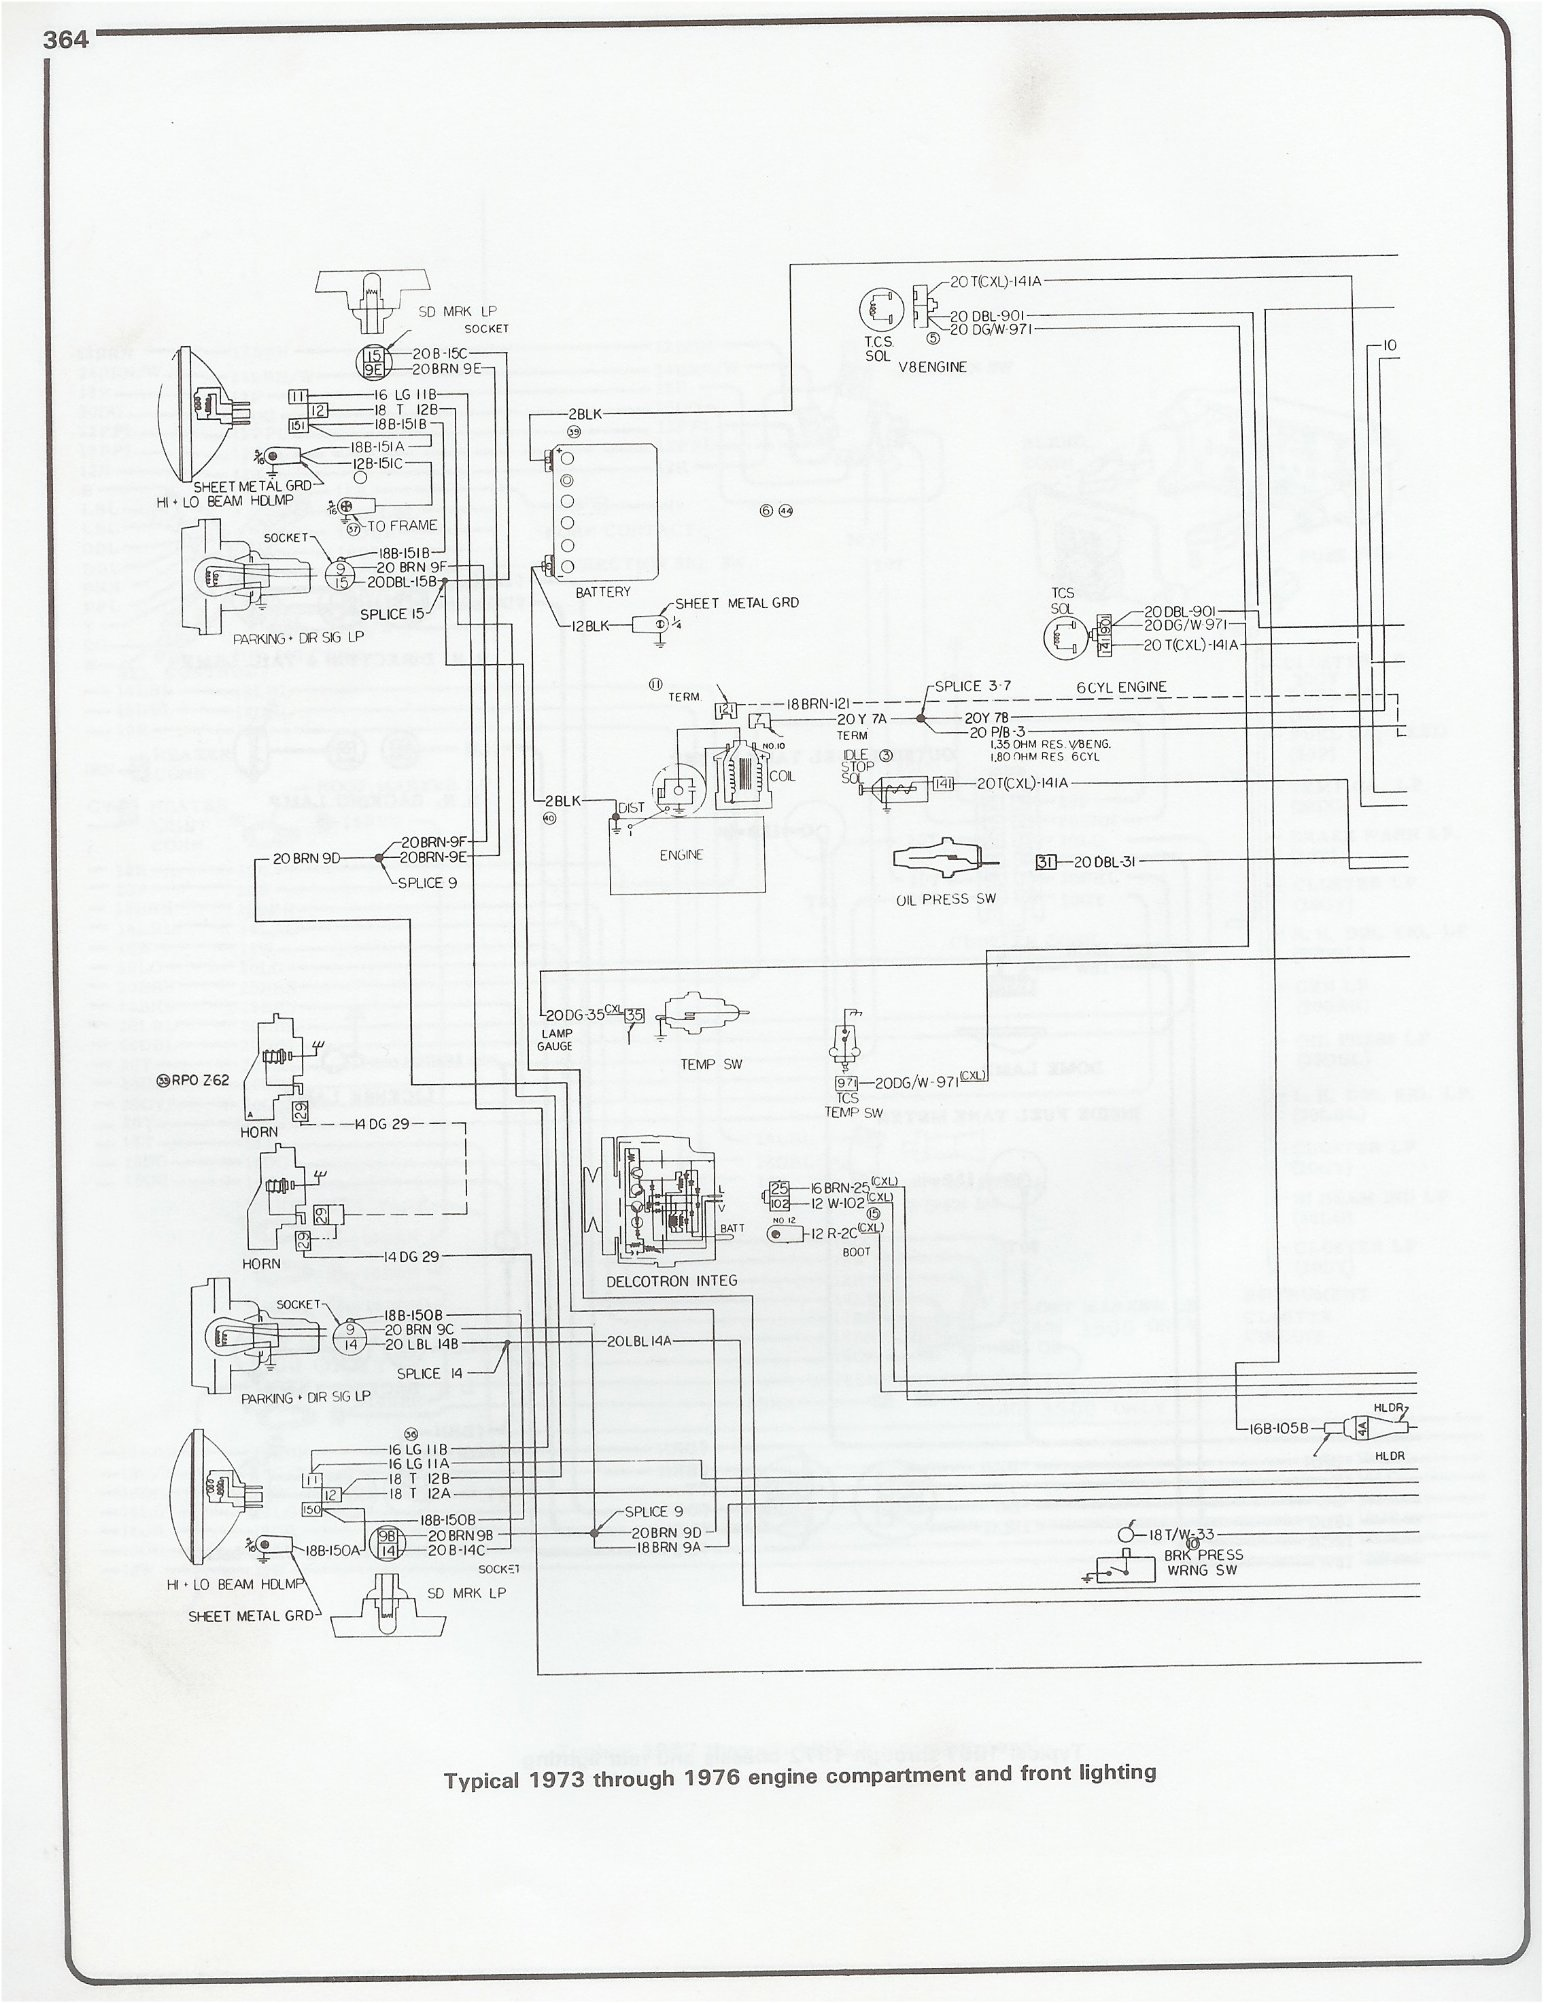 Complete 73 87 Wiring Diagrams 1965 Chevy Truck Distributor 76 Engine And Front Lighting